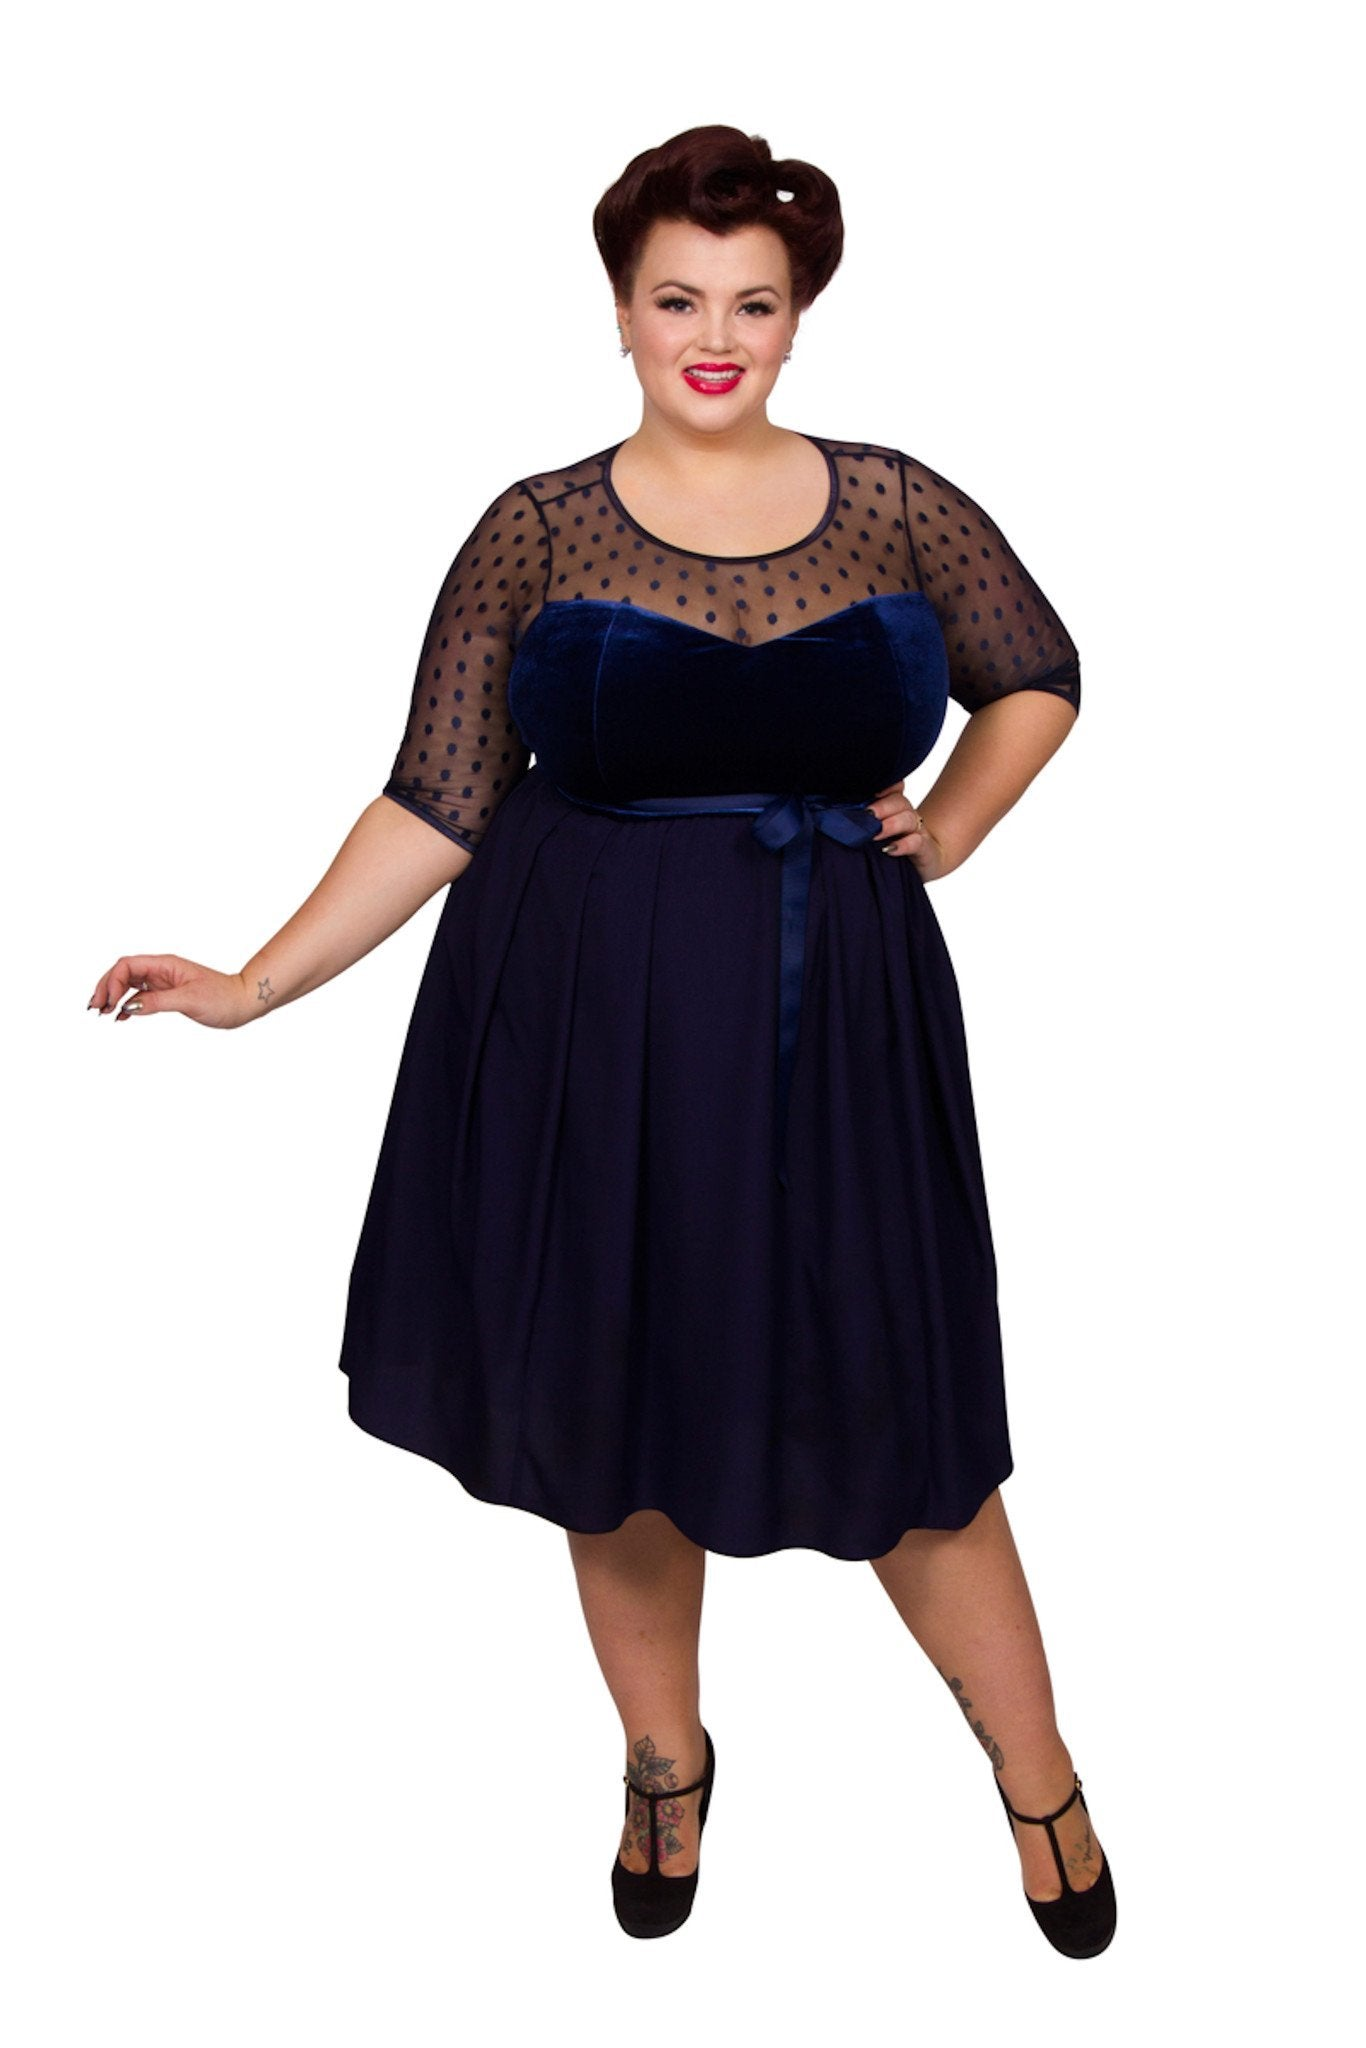 1940s Fashion Advice for Short Women Vintage Fairytale Dress - Midnight  26 £70.00 AT vintagedancer.com